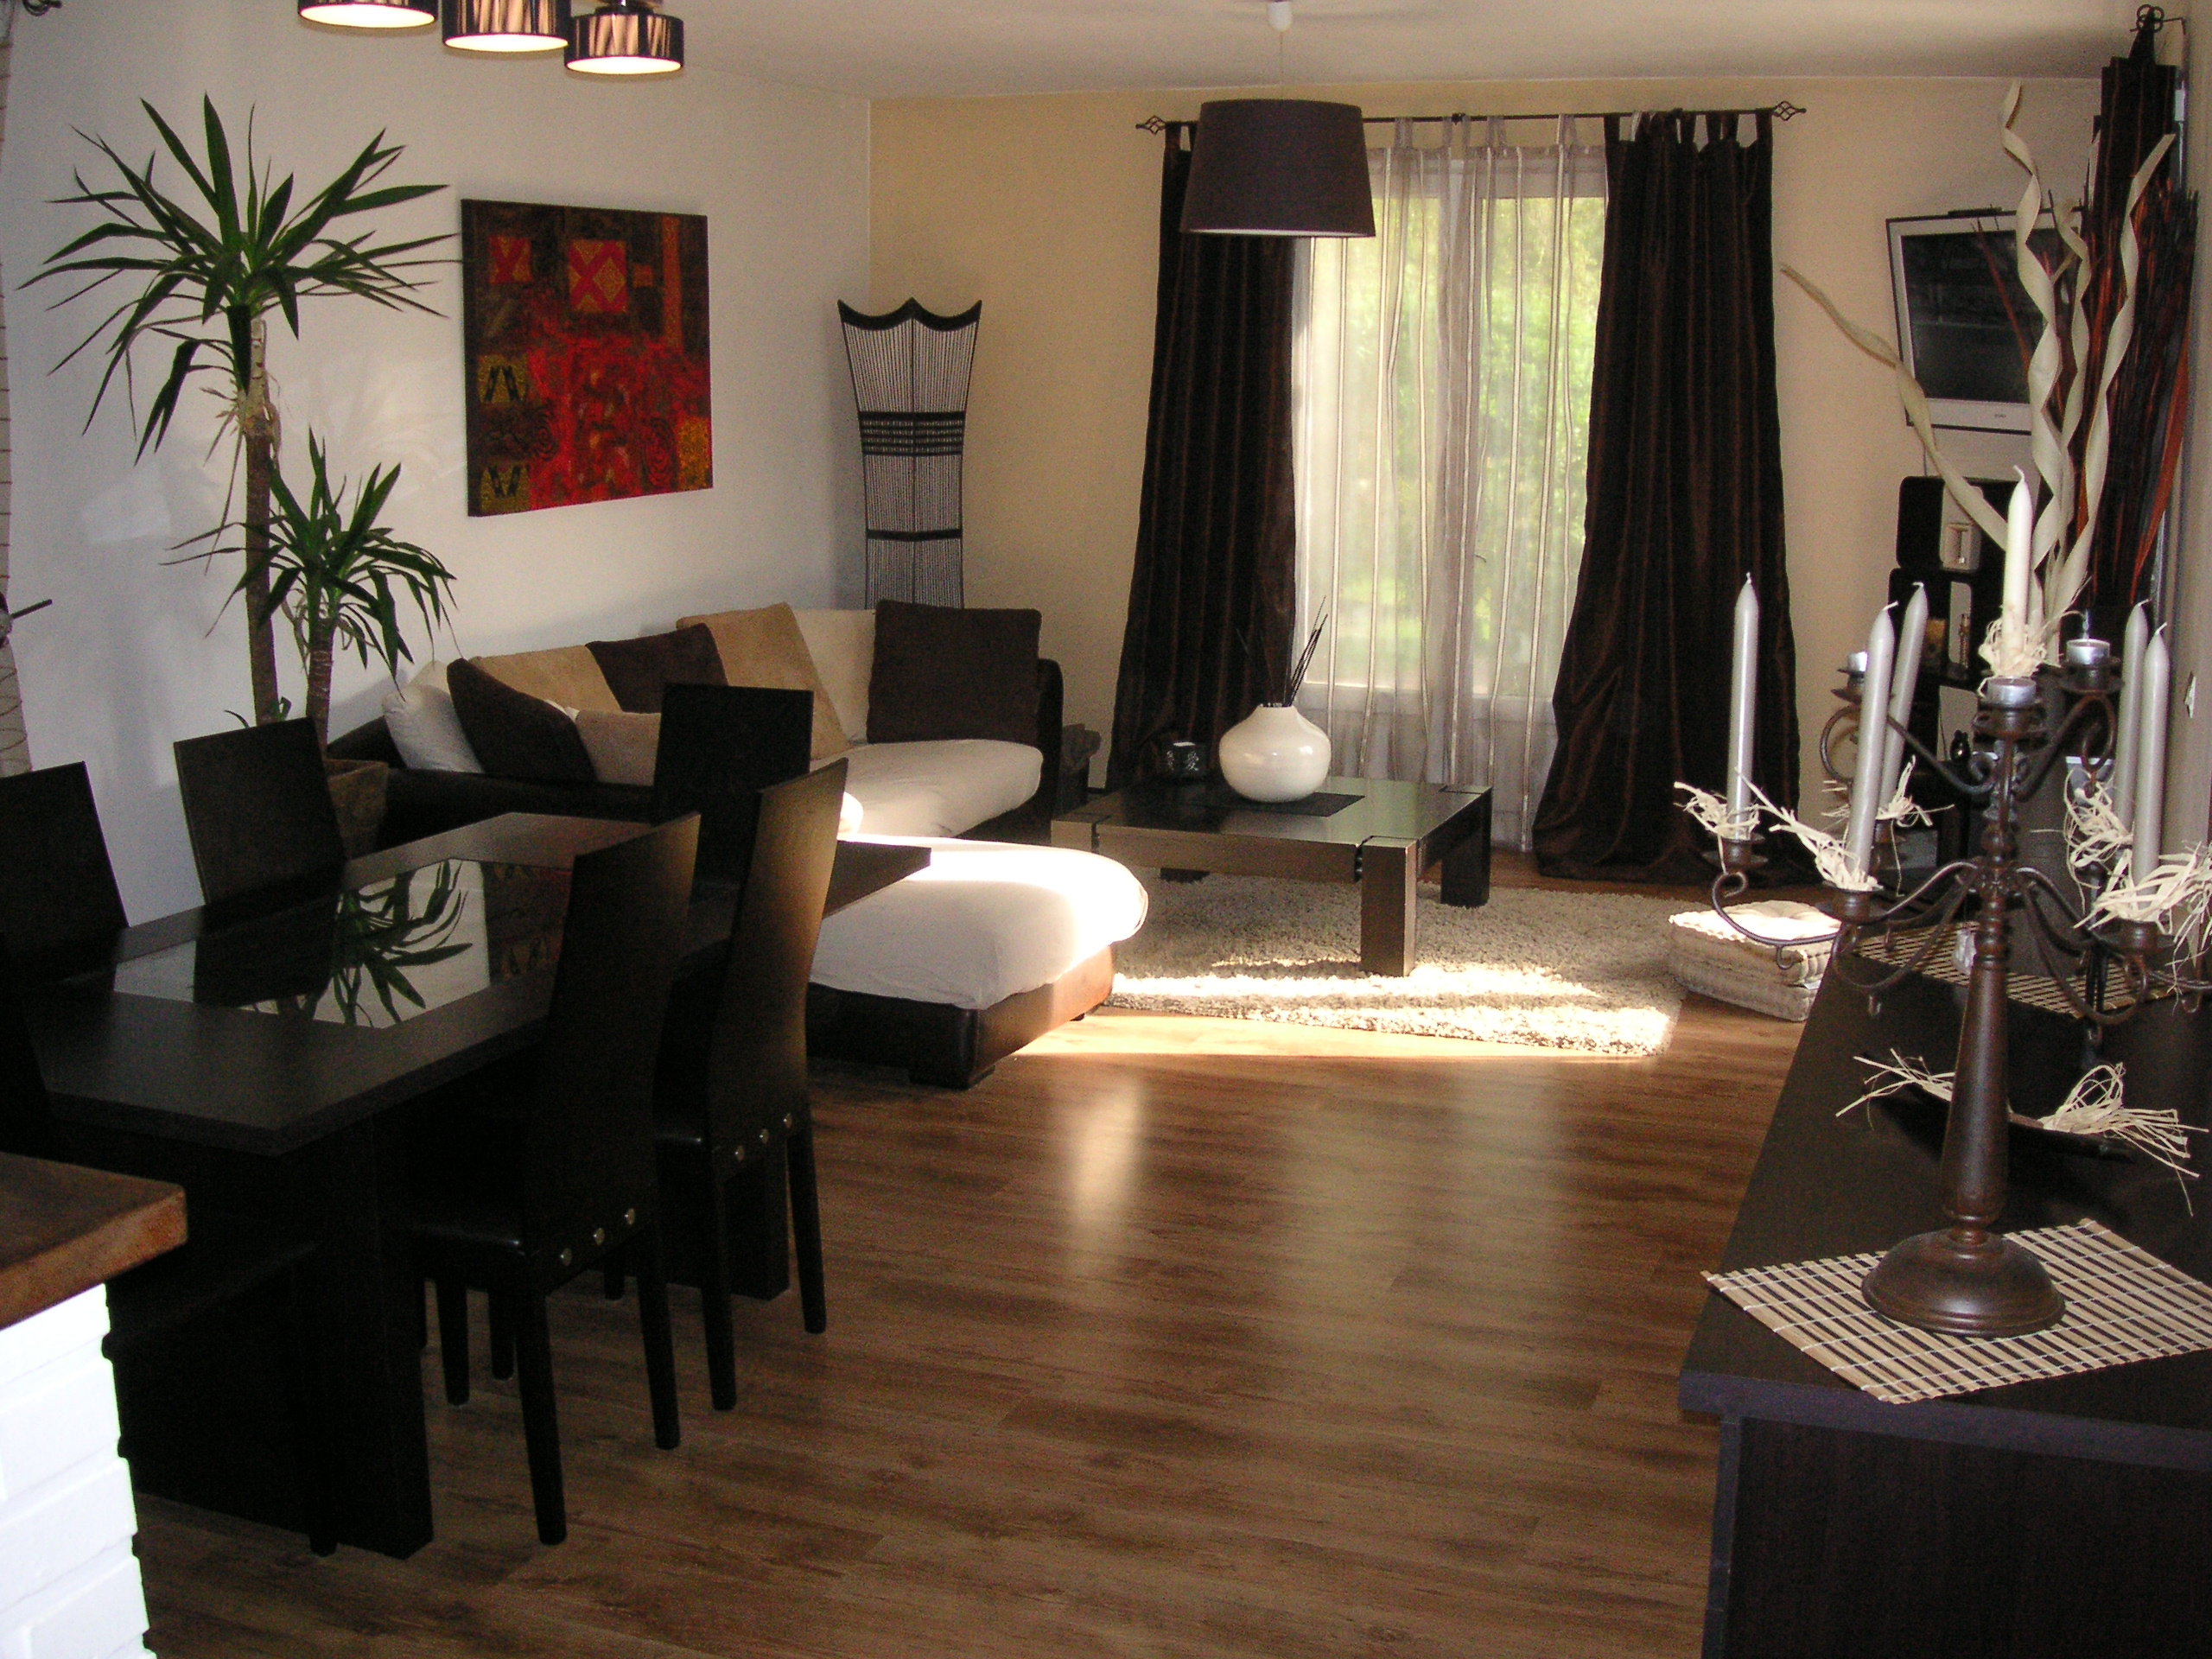 conseil d co divers r alisations en picardie home staging. Black Bedroom Furniture Sets. Home Design Ideas